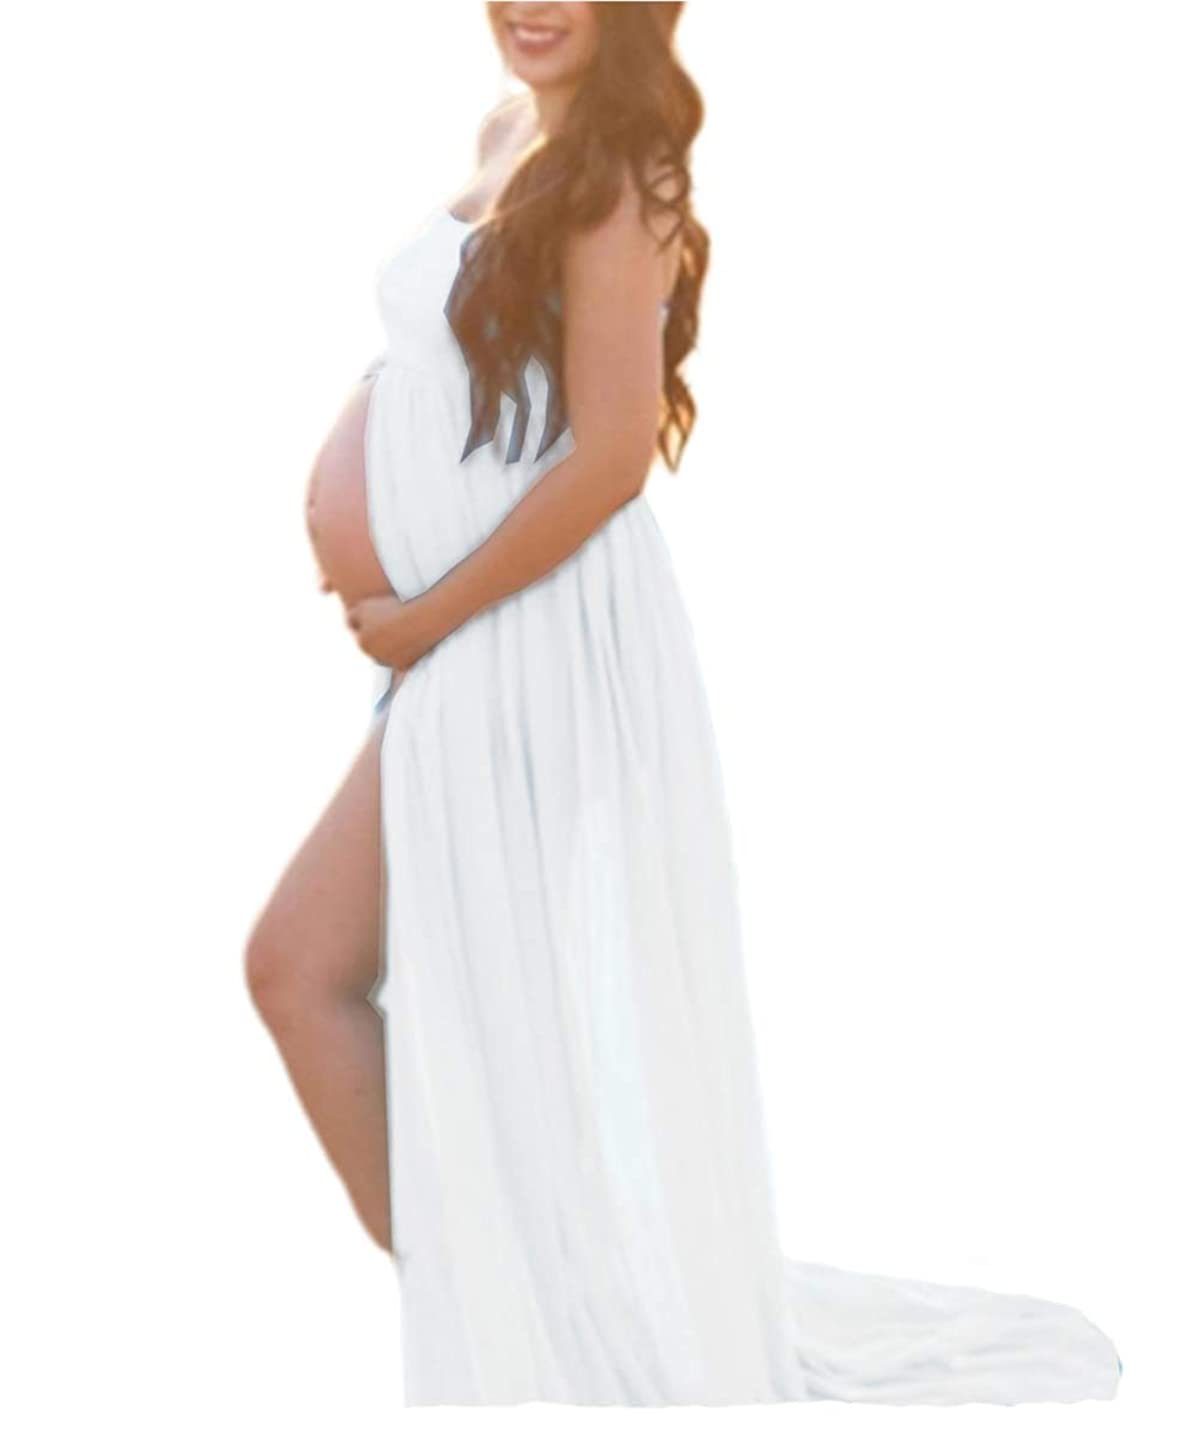 Maternity Dress for Photography Off Shoulder Chiffon Gown Split Front Maxi Pregnancy Dresses for Photoshoot